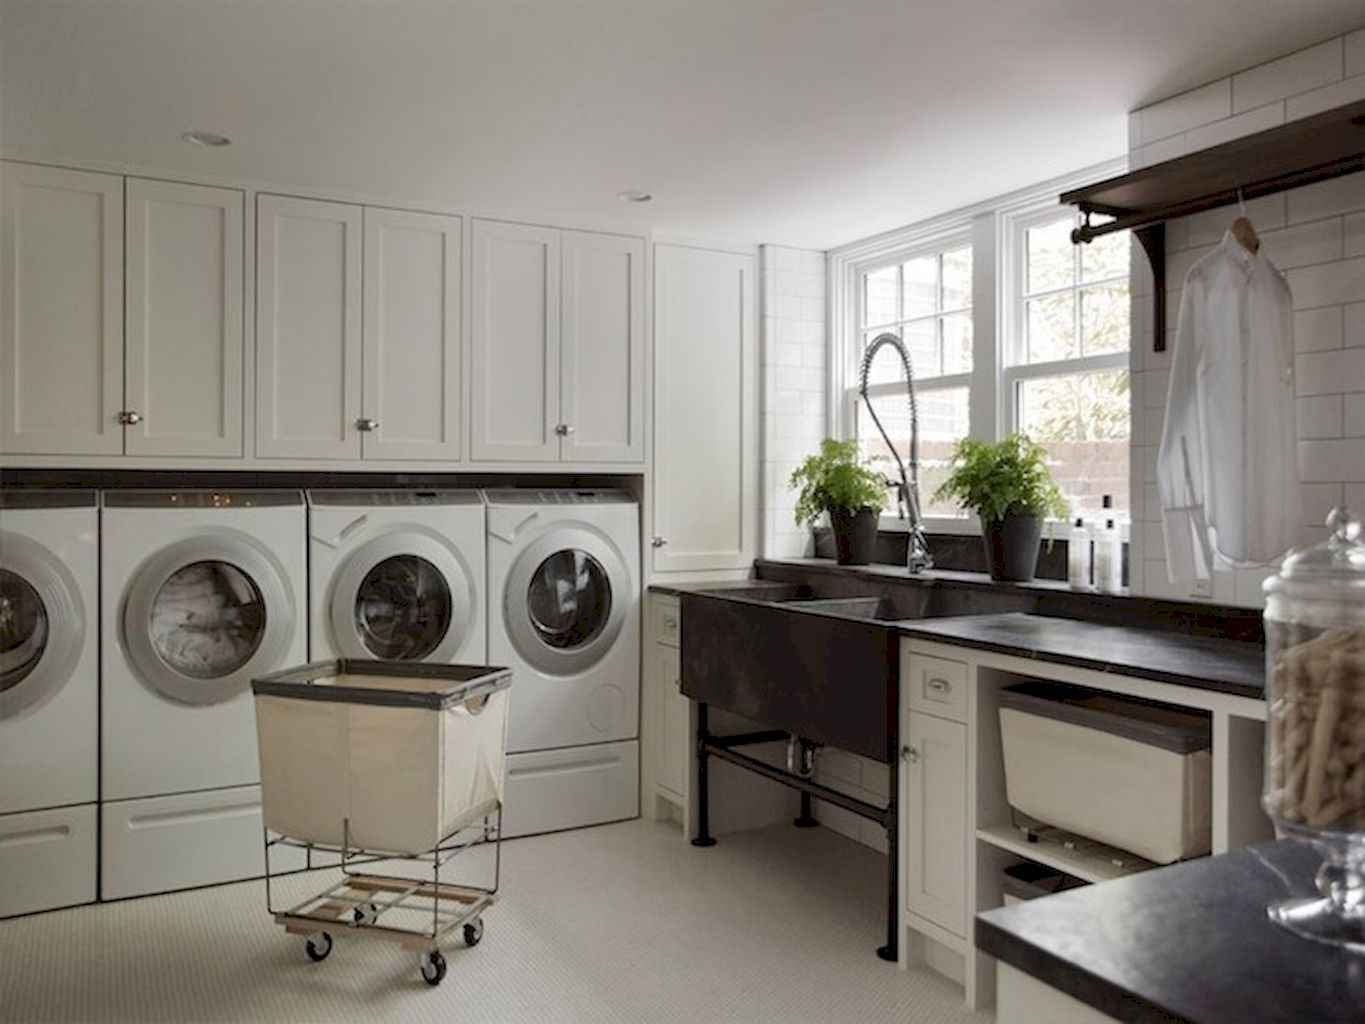 45 Rustic Farmhouse Laundry Room Design Ideas and Makeover (23)